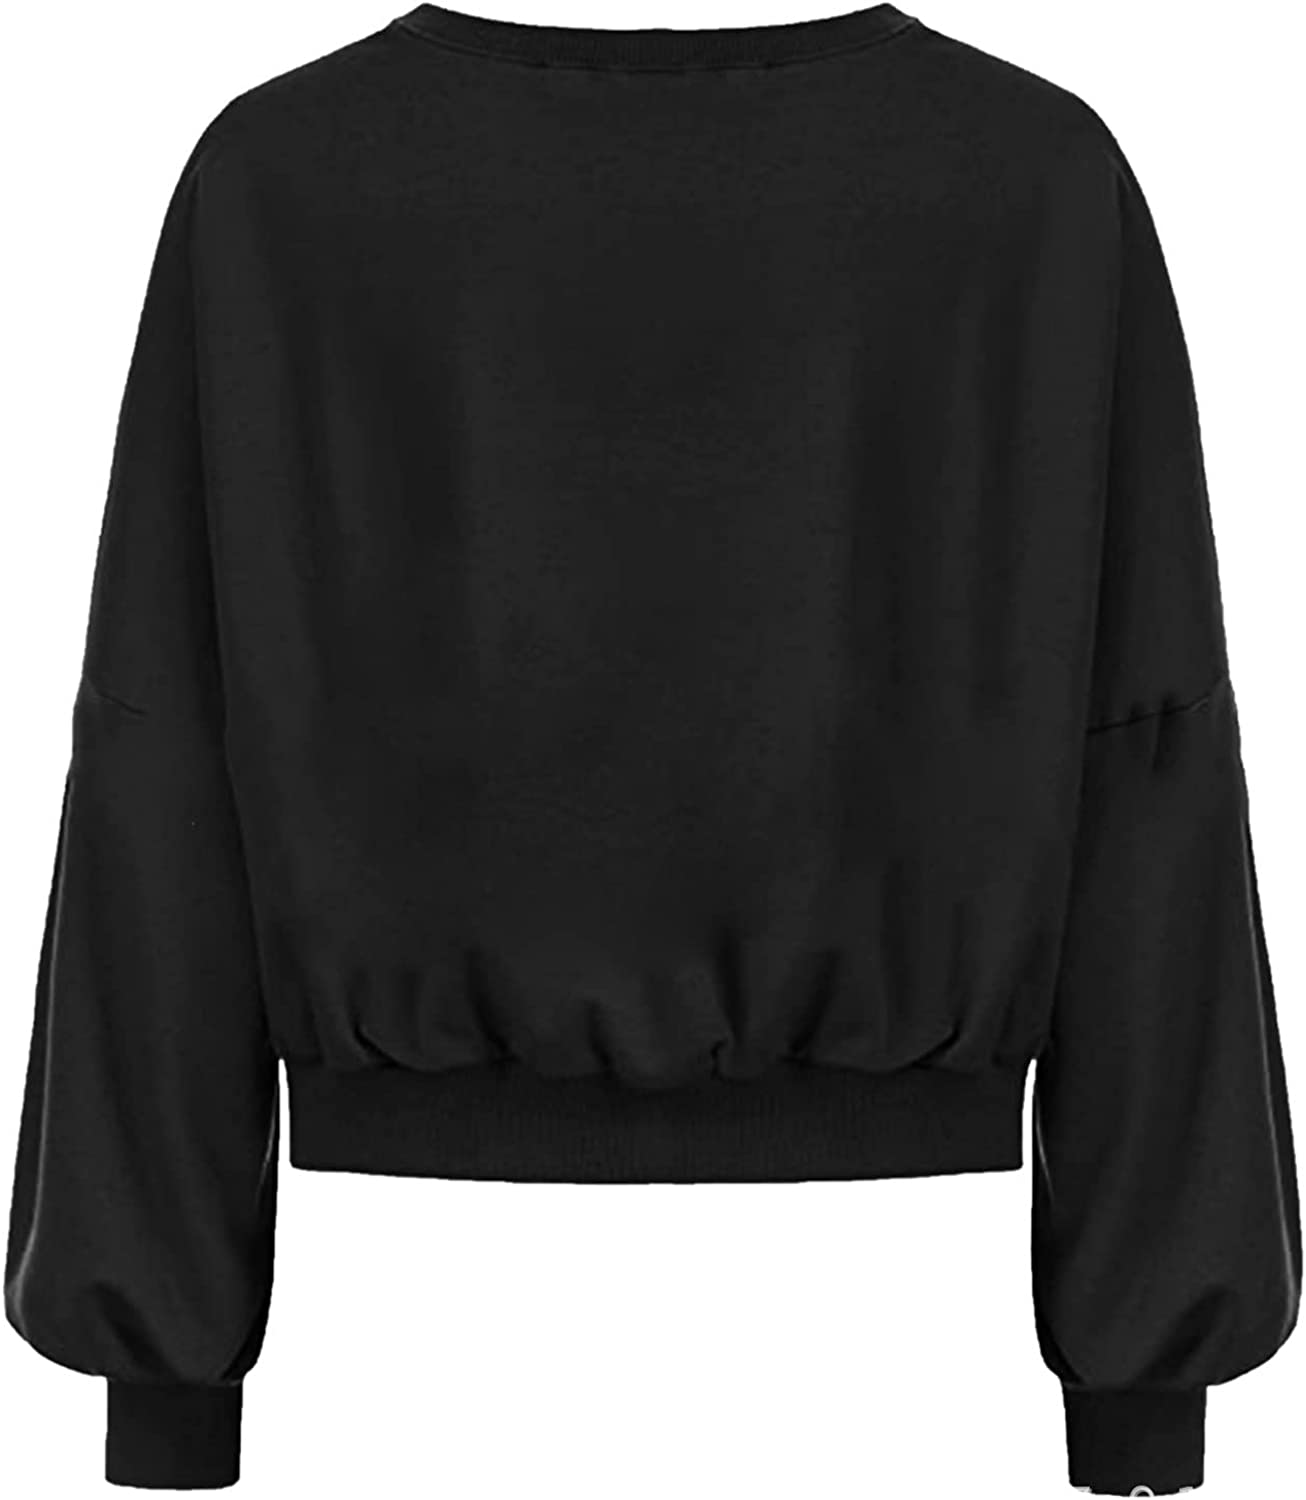 Women Sweatshirts Lantern Long Sleeve Solid Color Crop Tops Fashion Round Neck Simple Pullover Sweater